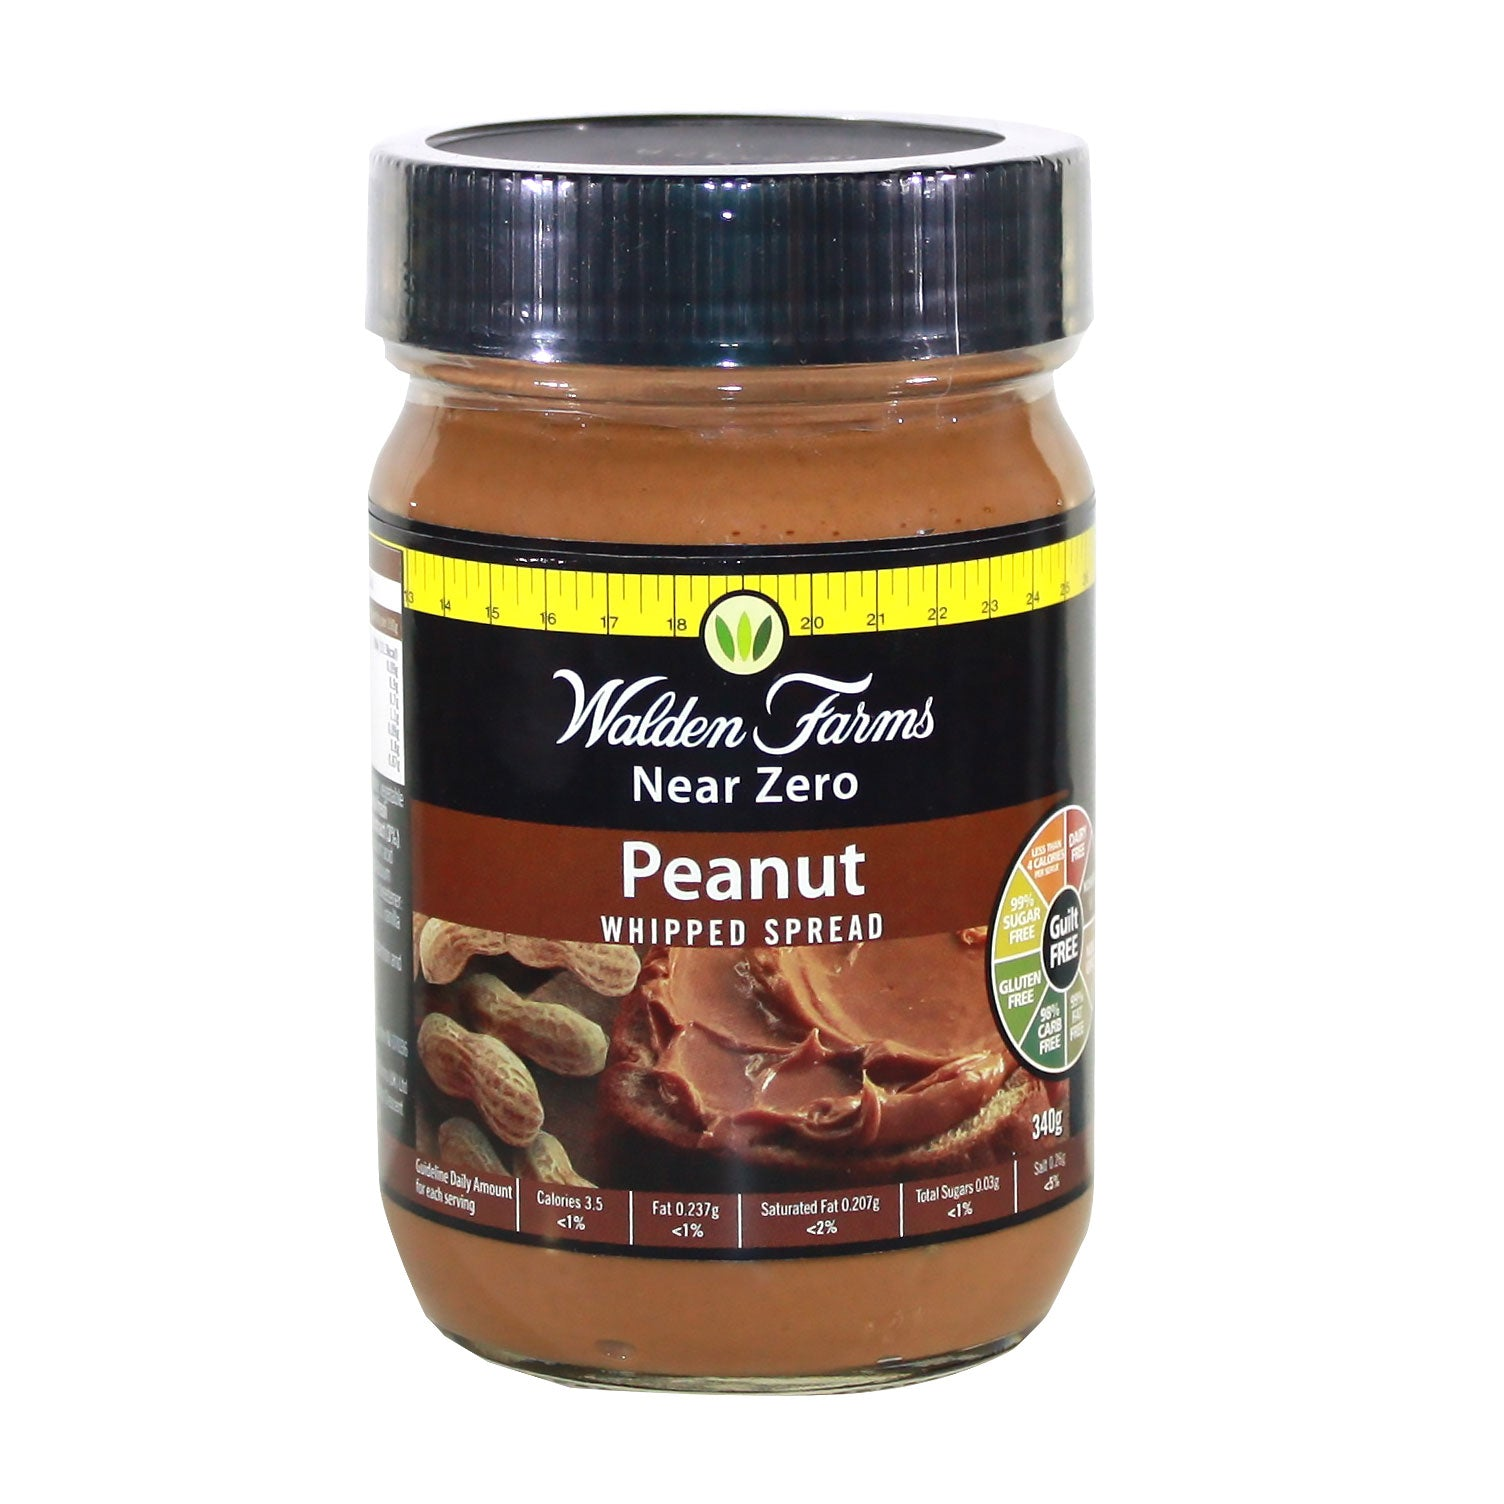 Gluten Free Whipped Peanut Spread with Near Zero Fat, Carb and Sugar